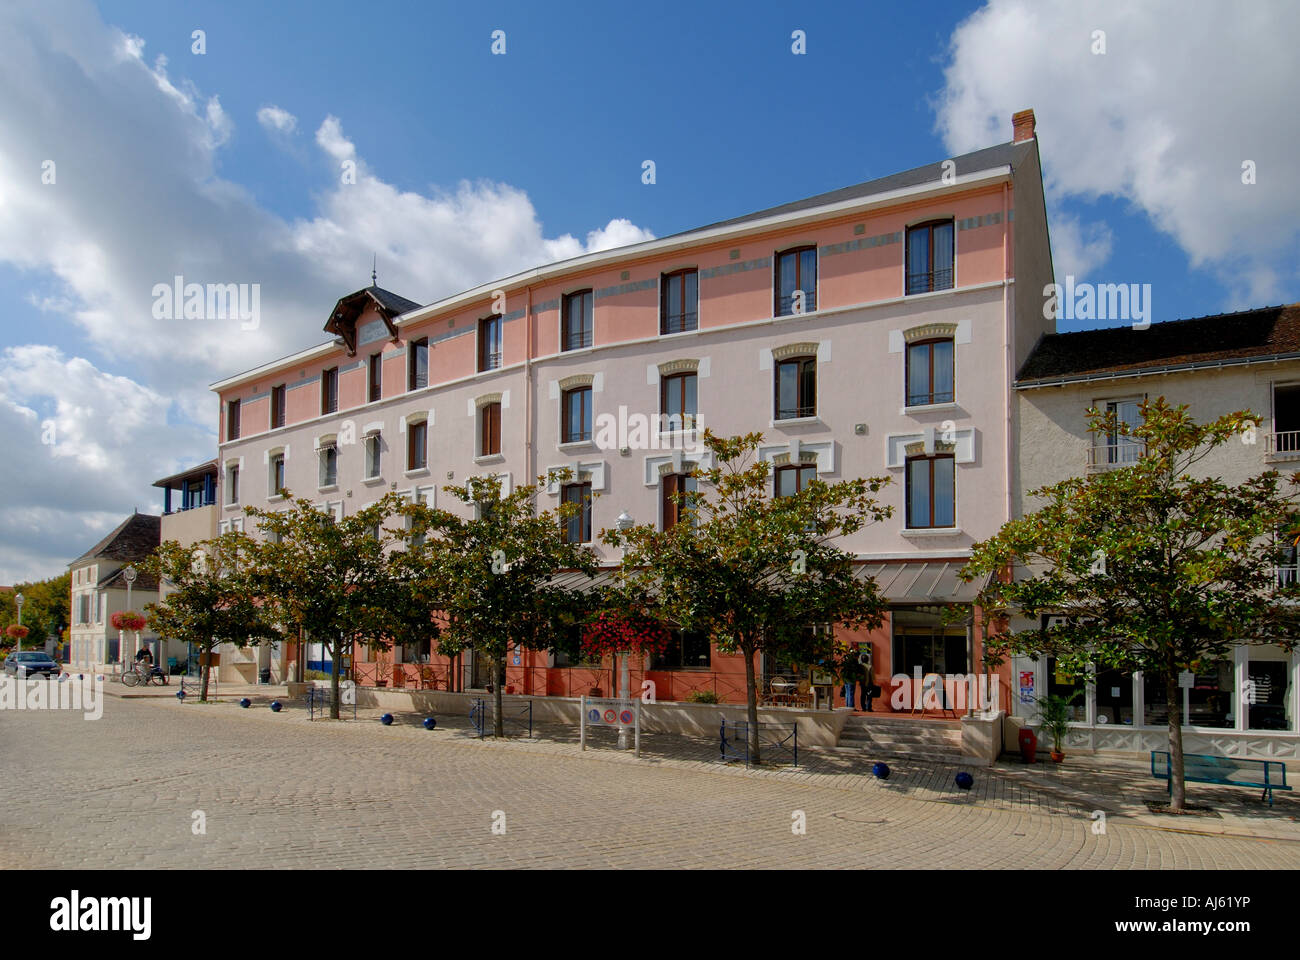 Hotel saint roch la roche posay vienne france stock for Appart hotel vienne france